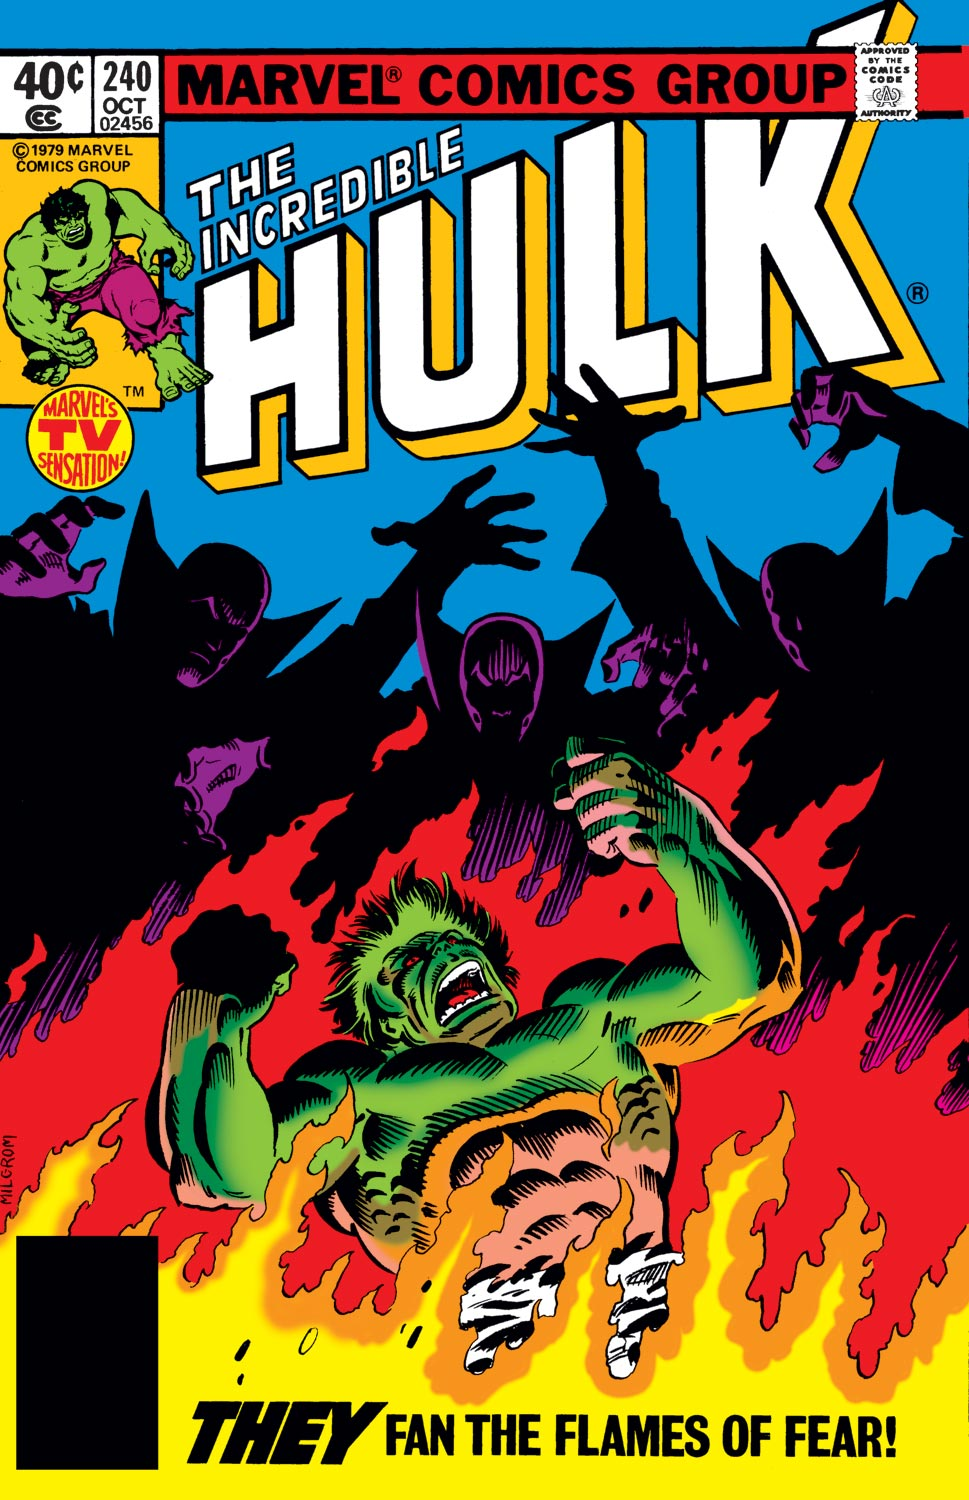 Incredible Hulk (1962) #240